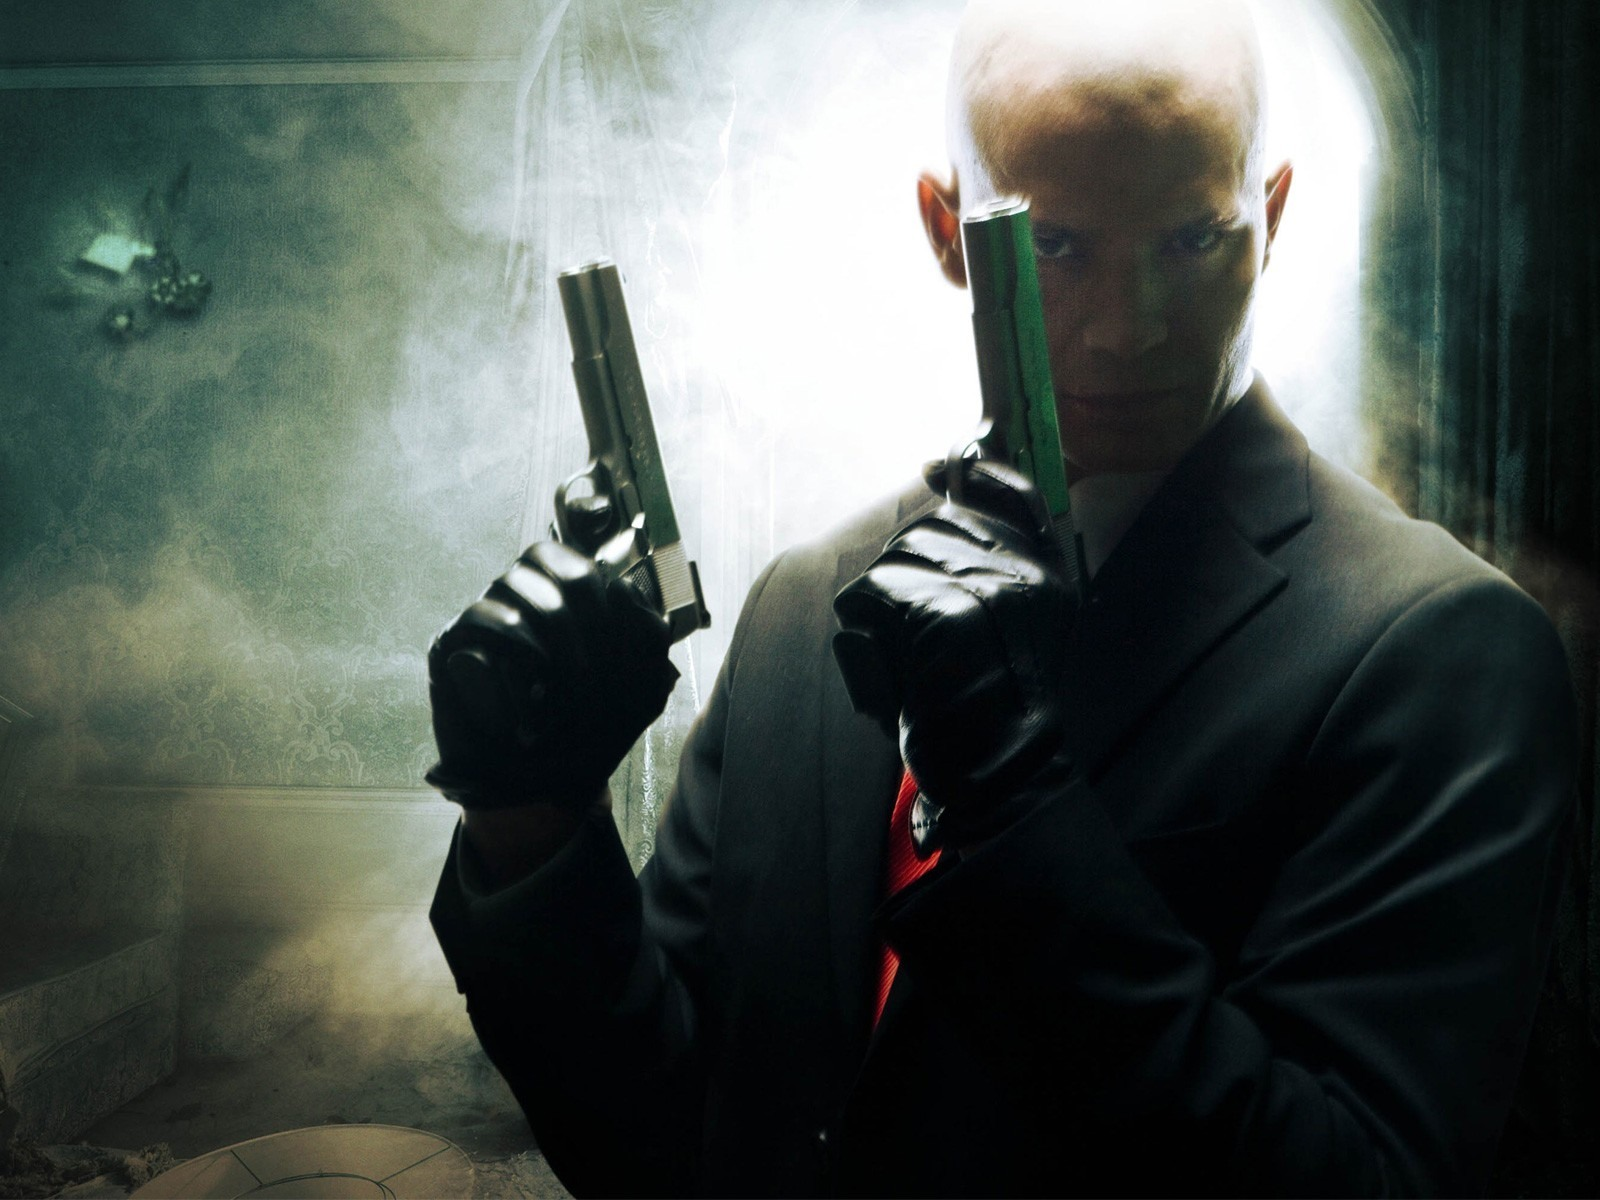 http://1.bp.blogspot.com/-u7iZ9OBu_Lg/TaWfSTl0nRI/AAAAAAAAA58/pbCuMEwZu5Y/s1600/movie-wallpaper-hitman-timothy-olyphant-1179.jpg